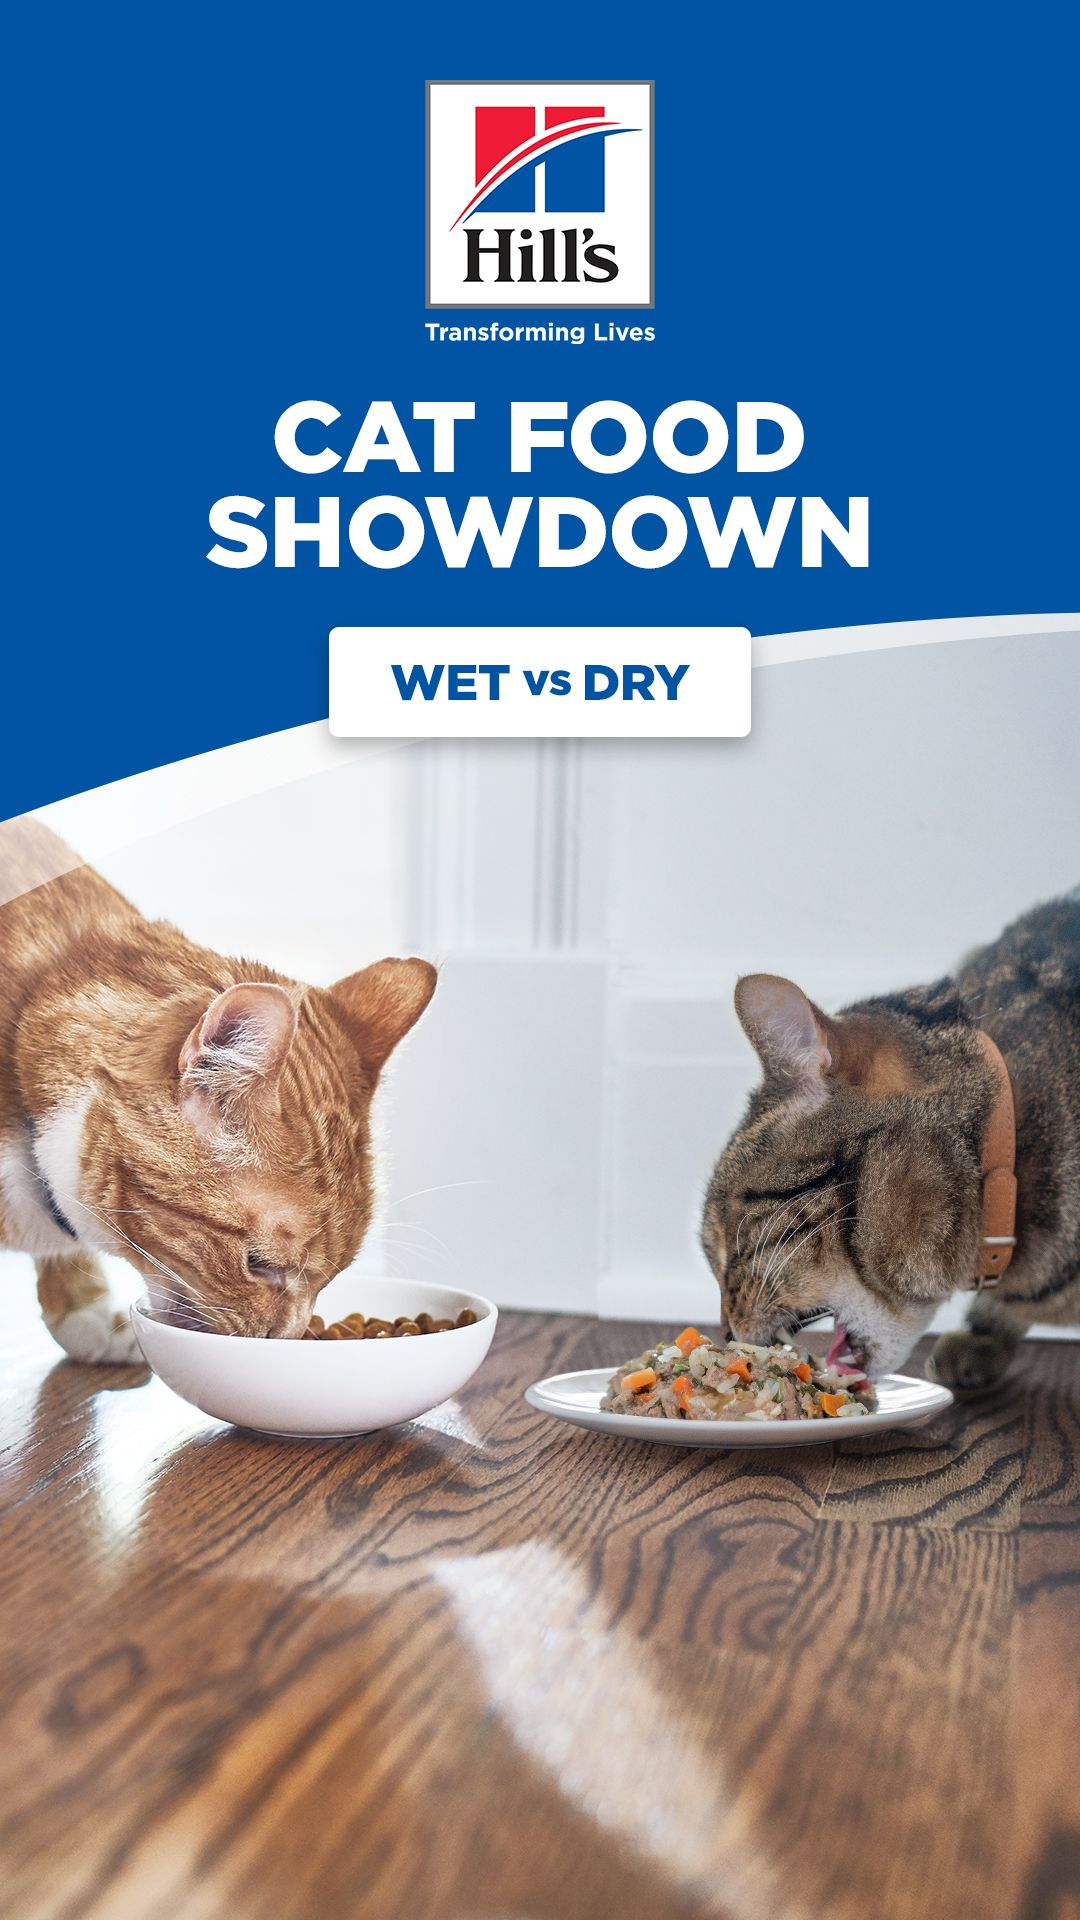 Should You Buy Wet Or Dry Cat Food In 2020 Dry Cat Food Cats Cat Food